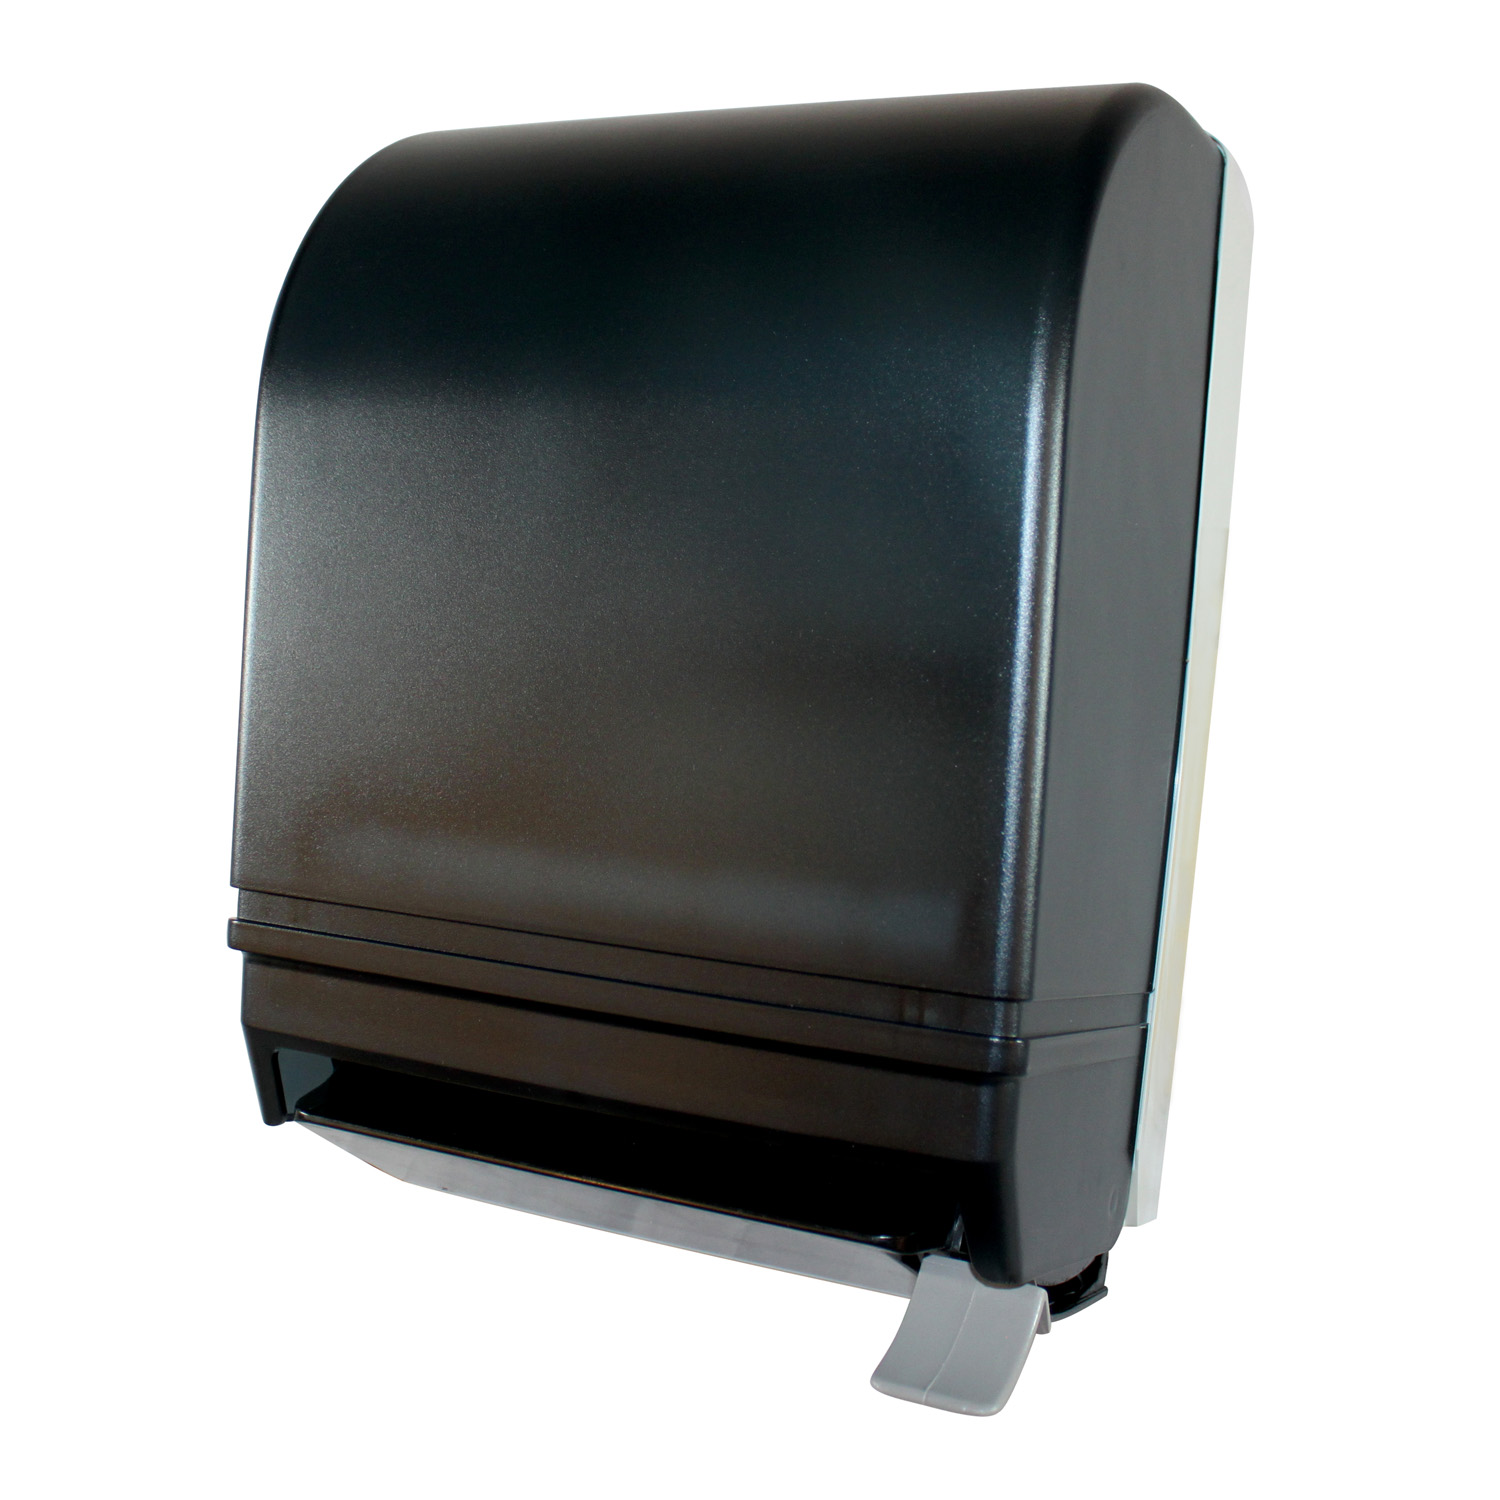 Impact Products 4079 paper towel dispenser